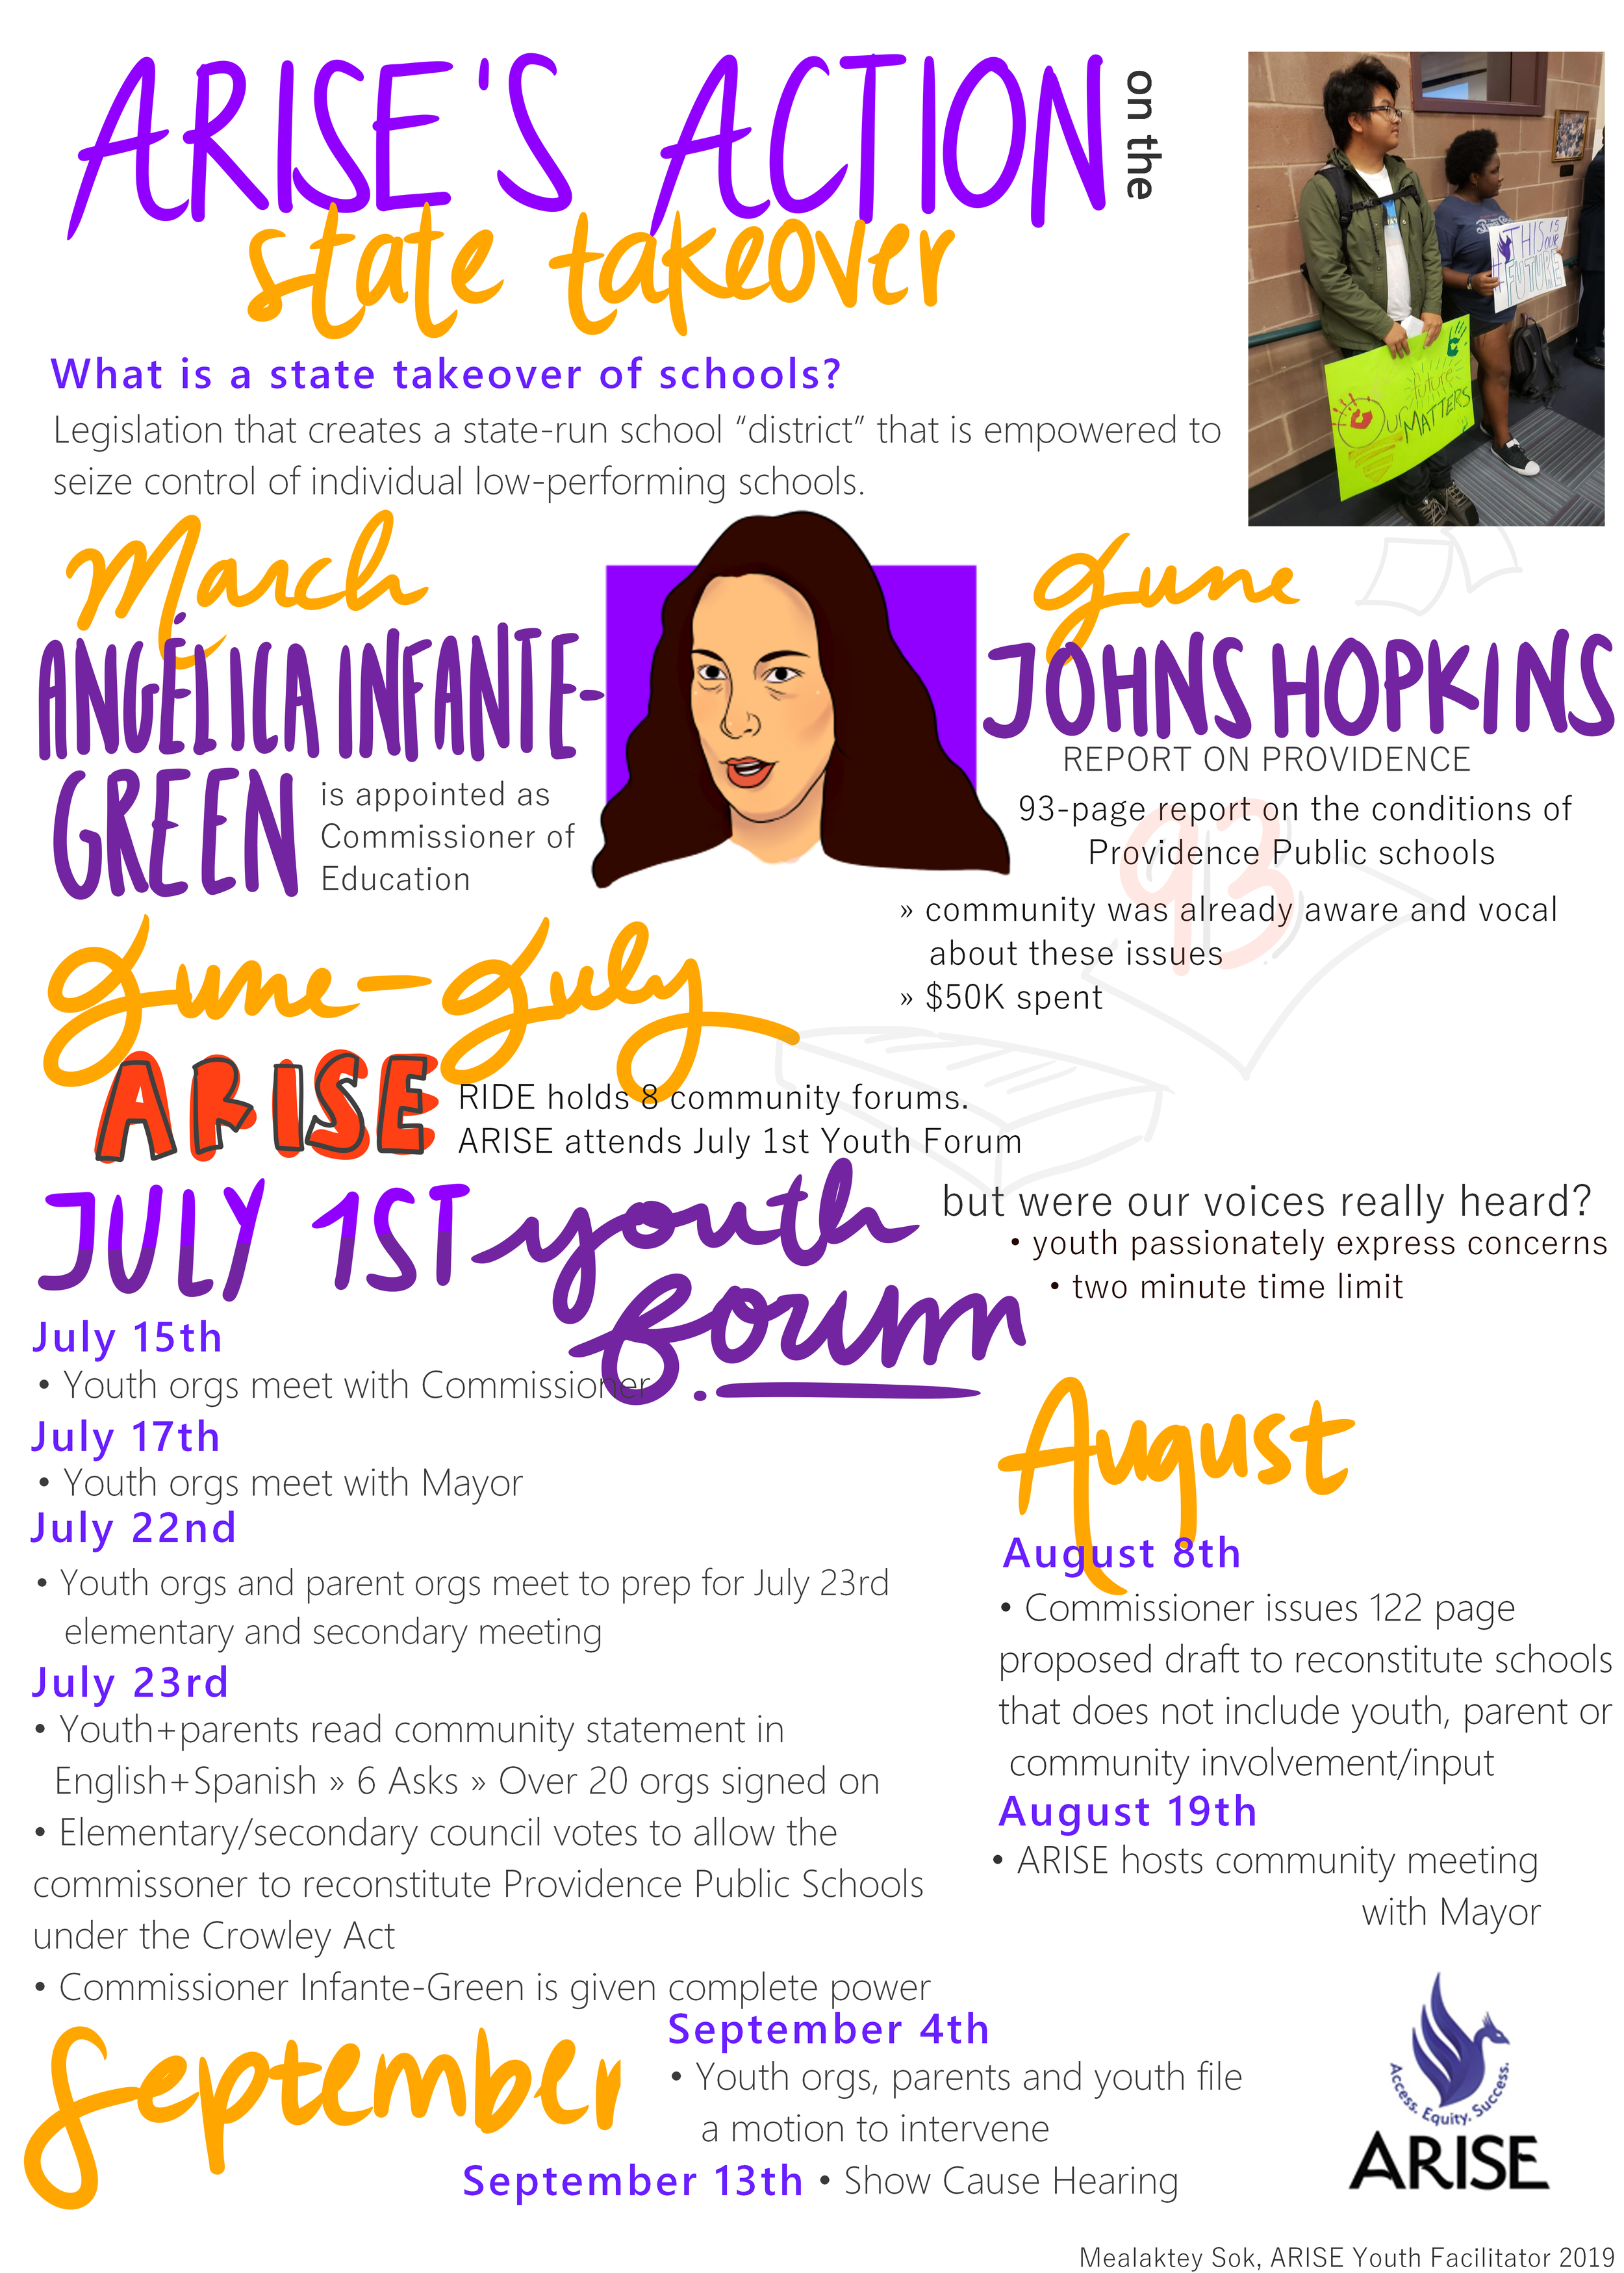 Our partner, ARISE, has published this infographic to help people understand how youth have been organizing for the past four months in response to the impending state takeover.